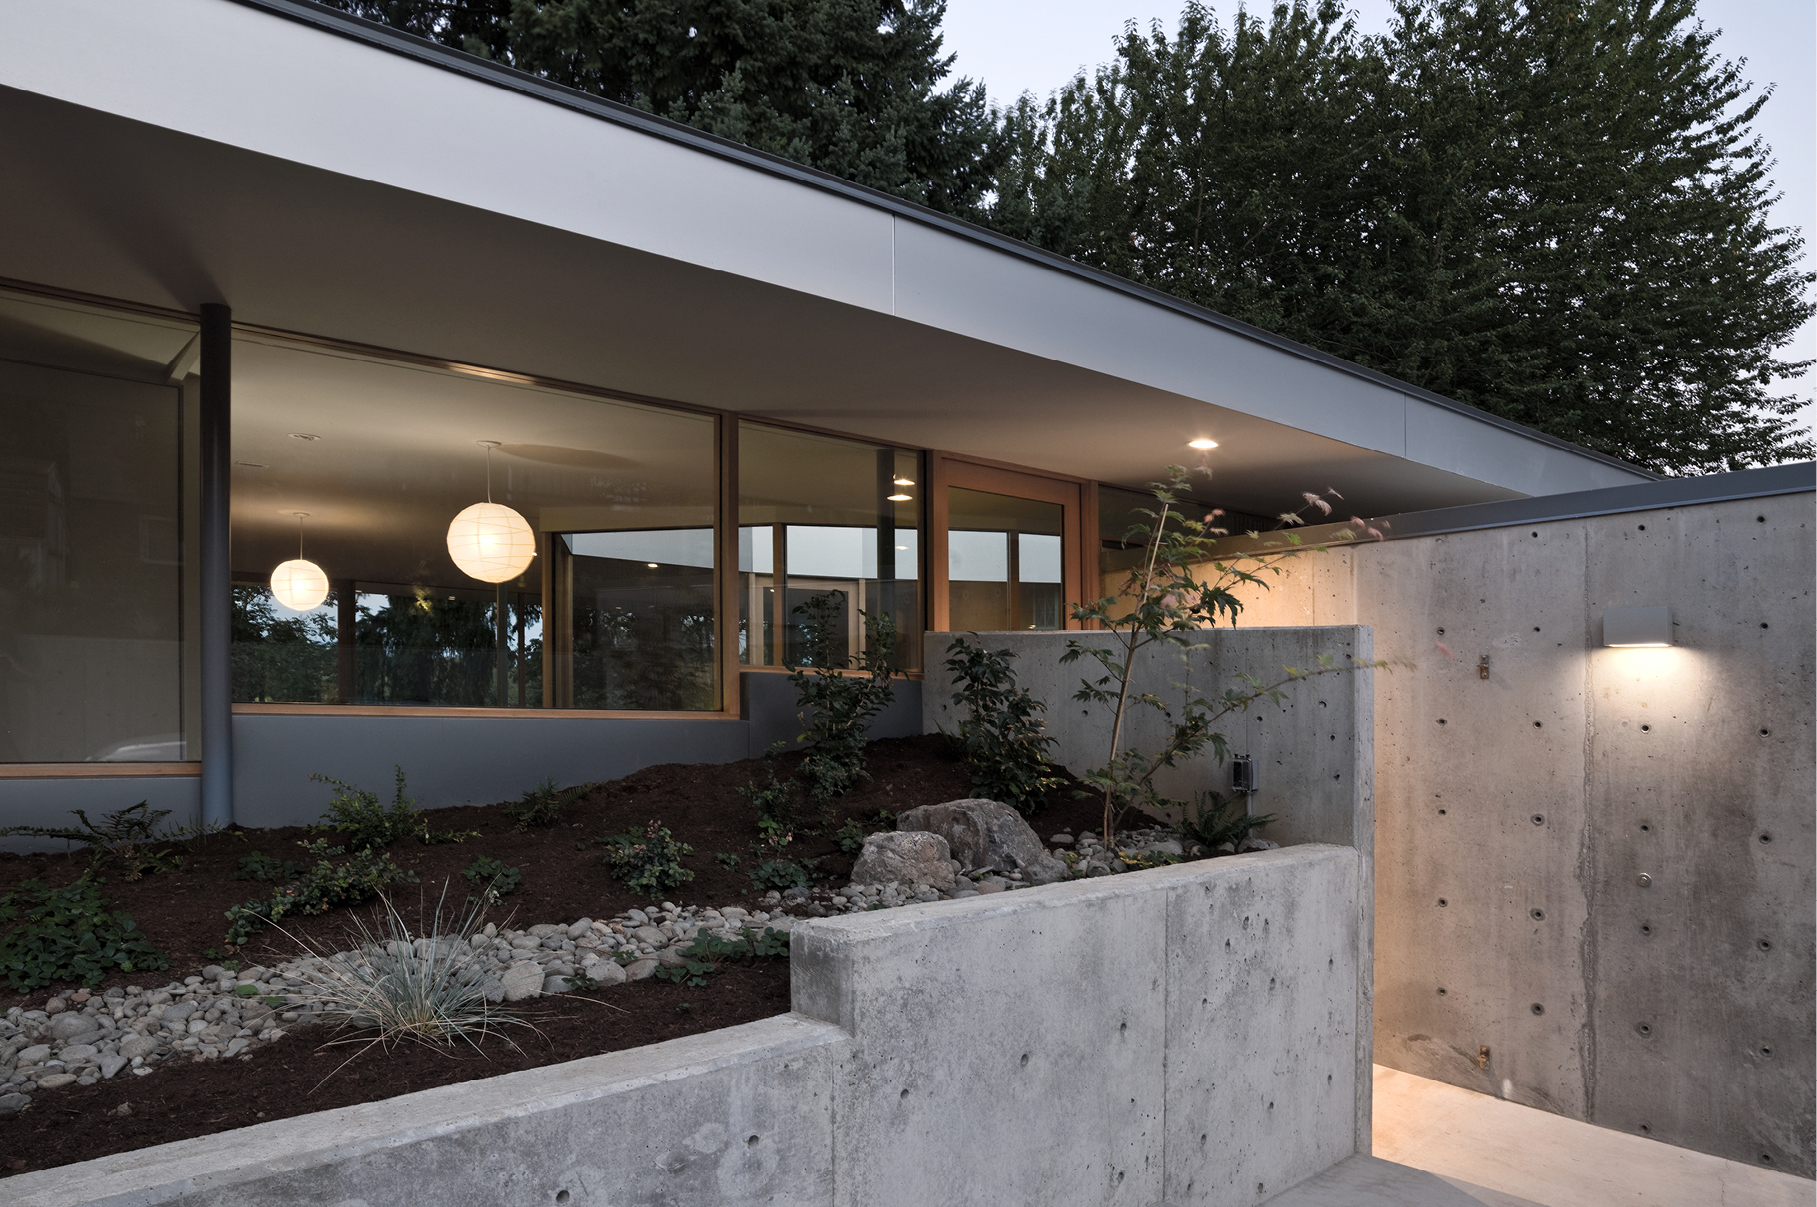 courtyard house by no architecture ignant com conventional house with a series of unused bedrooms during the day the courtyard house is experienced as a single loft with every room becoming living